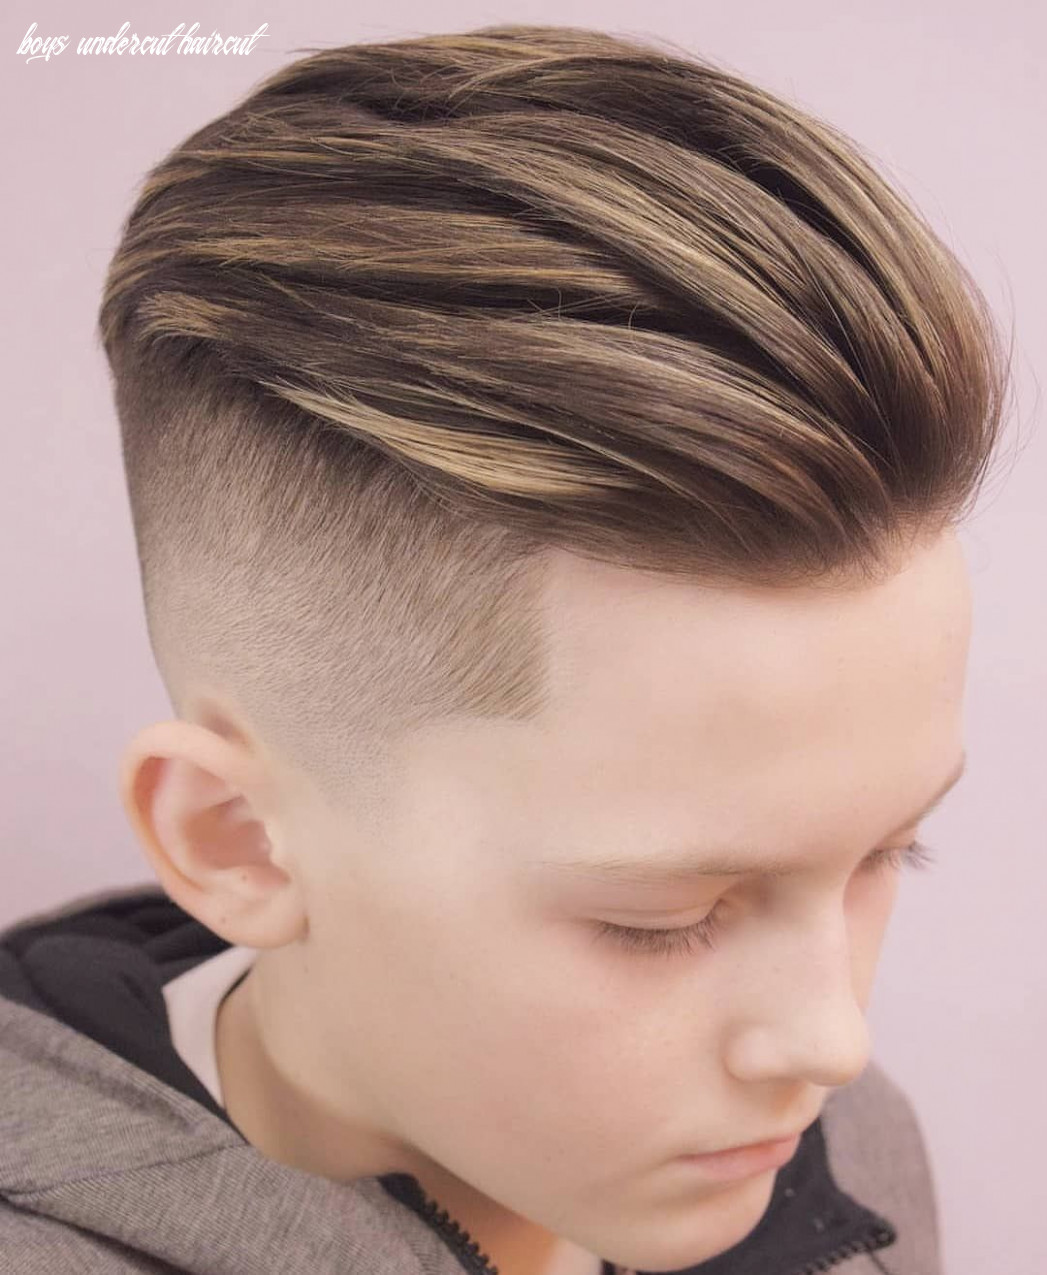 Top 12 beautiful hair style boys 12 boys hairstyles images (mit